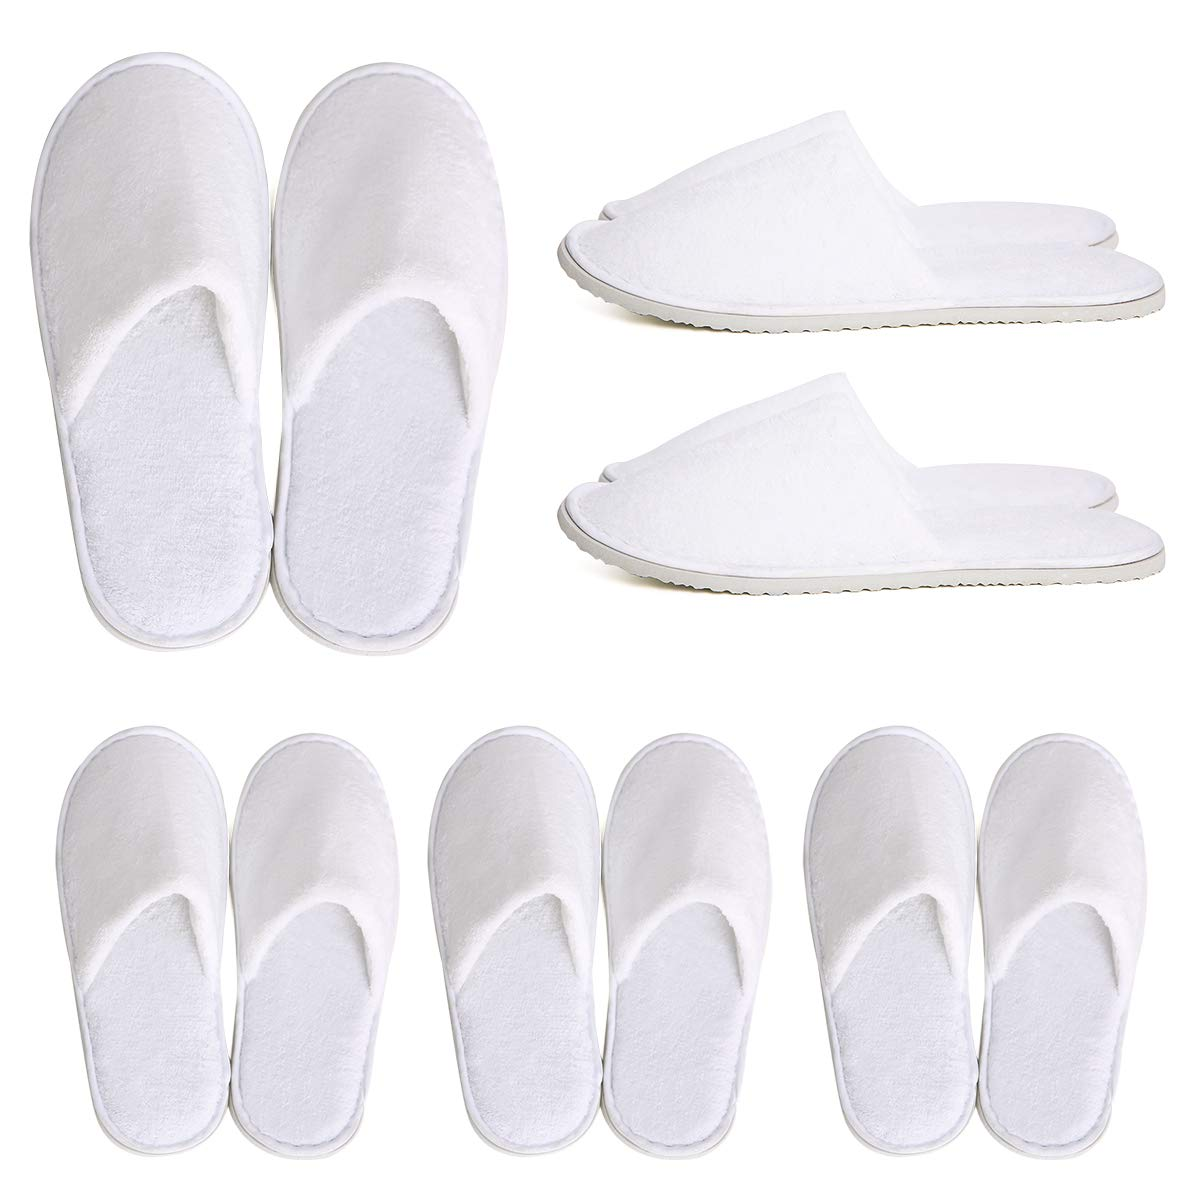 DAWOOWOO SPA Guest Slippers Set of 6 Housewarming Slippers Closed Coral Velvet Guest Room Hotel Swimming Pool Bathroom Bedroom Disposable